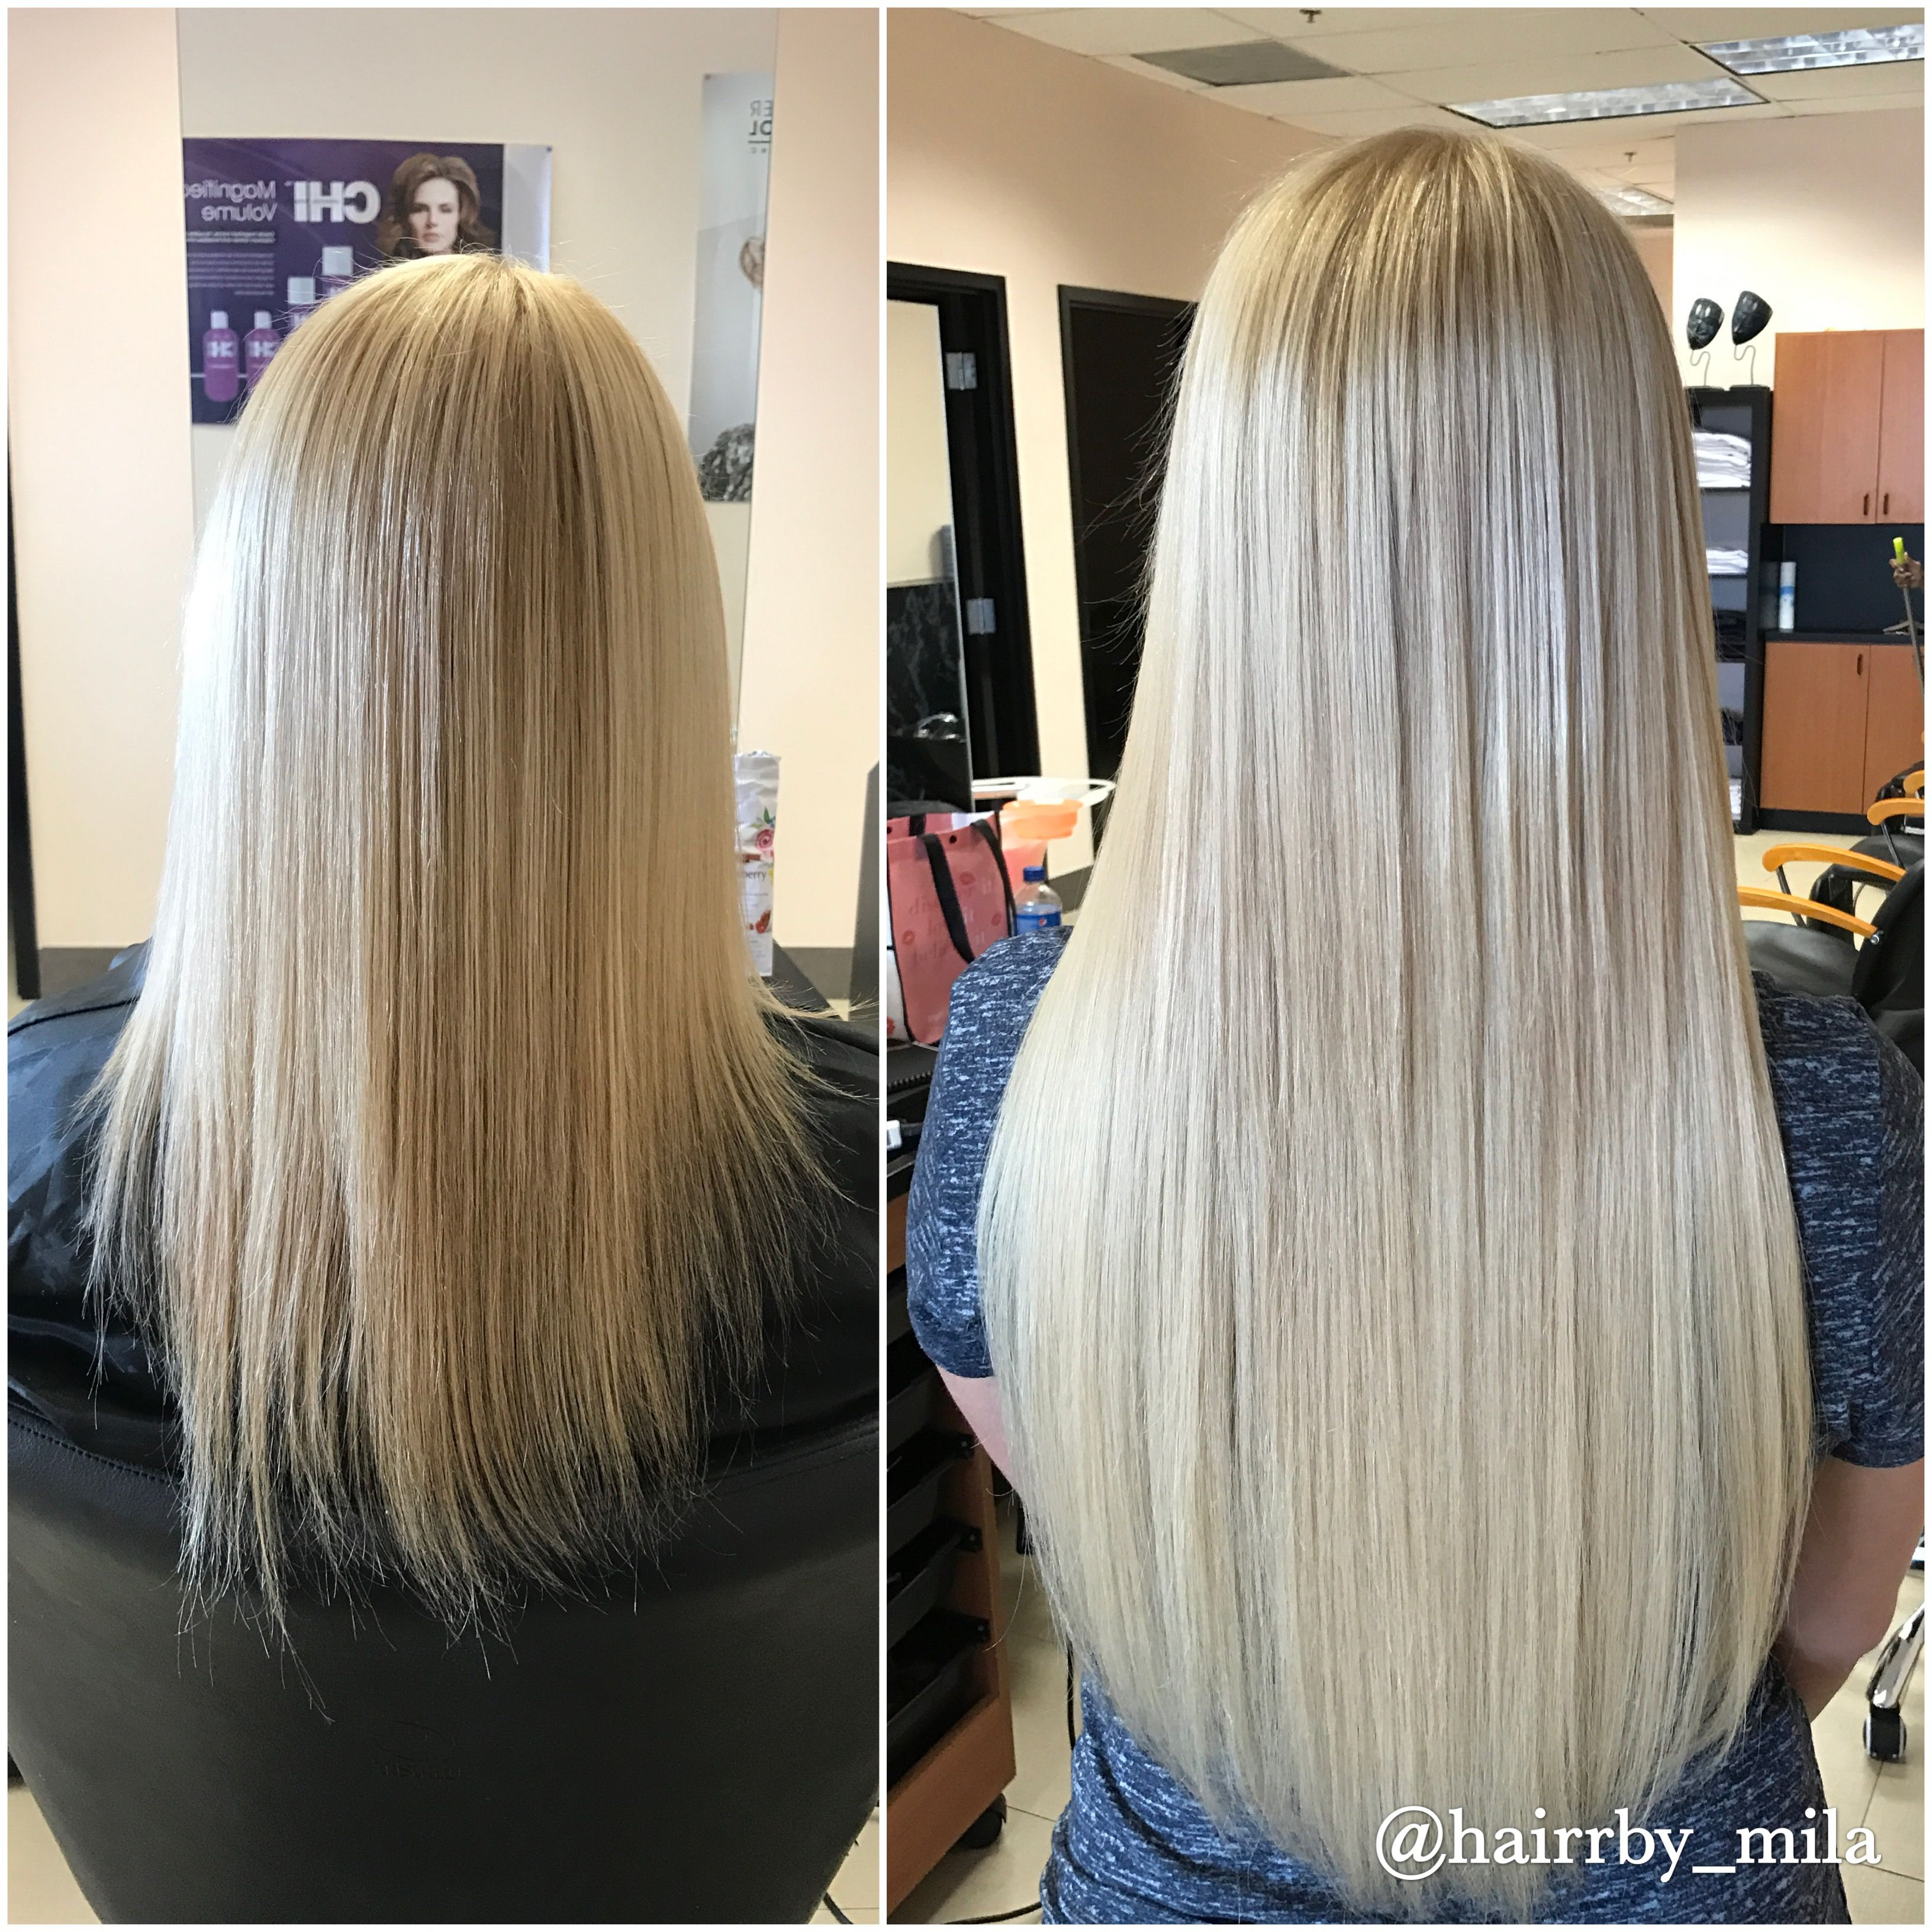 Blond Extensions Beauty Locks Extension Services Before And